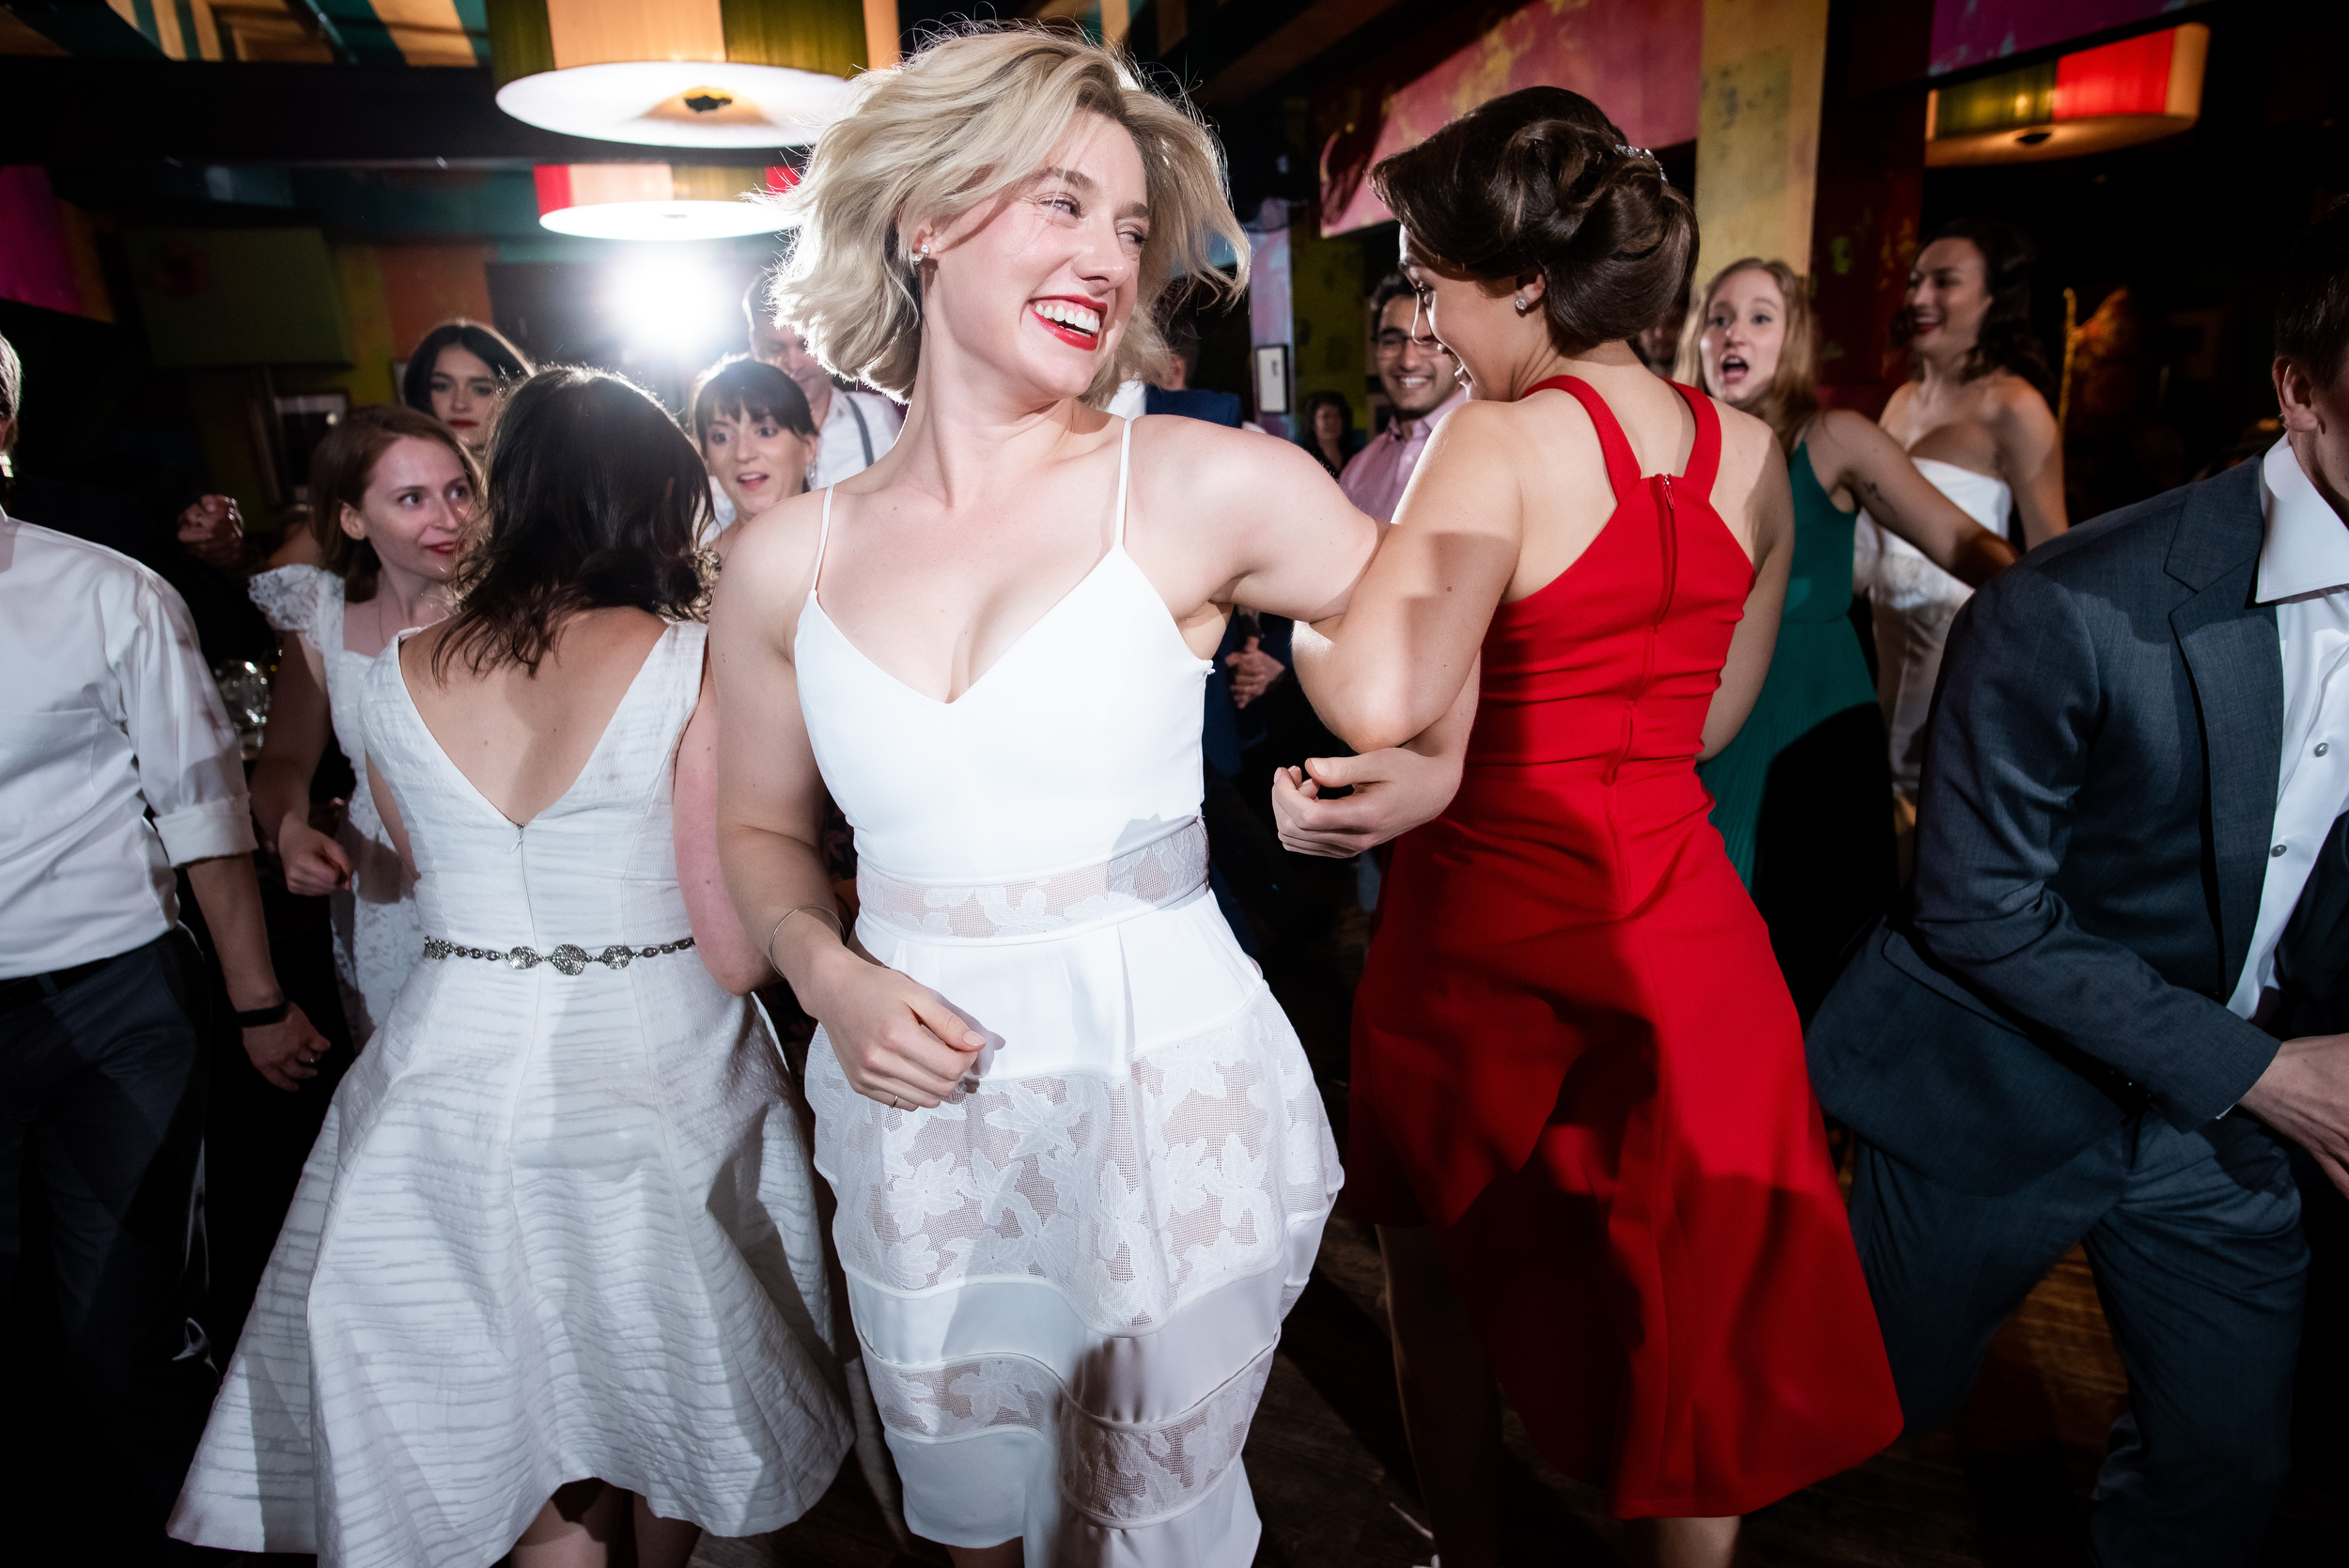 Wedding guests dancing during Carnivale Chicago wedding captured by J Brown Photography